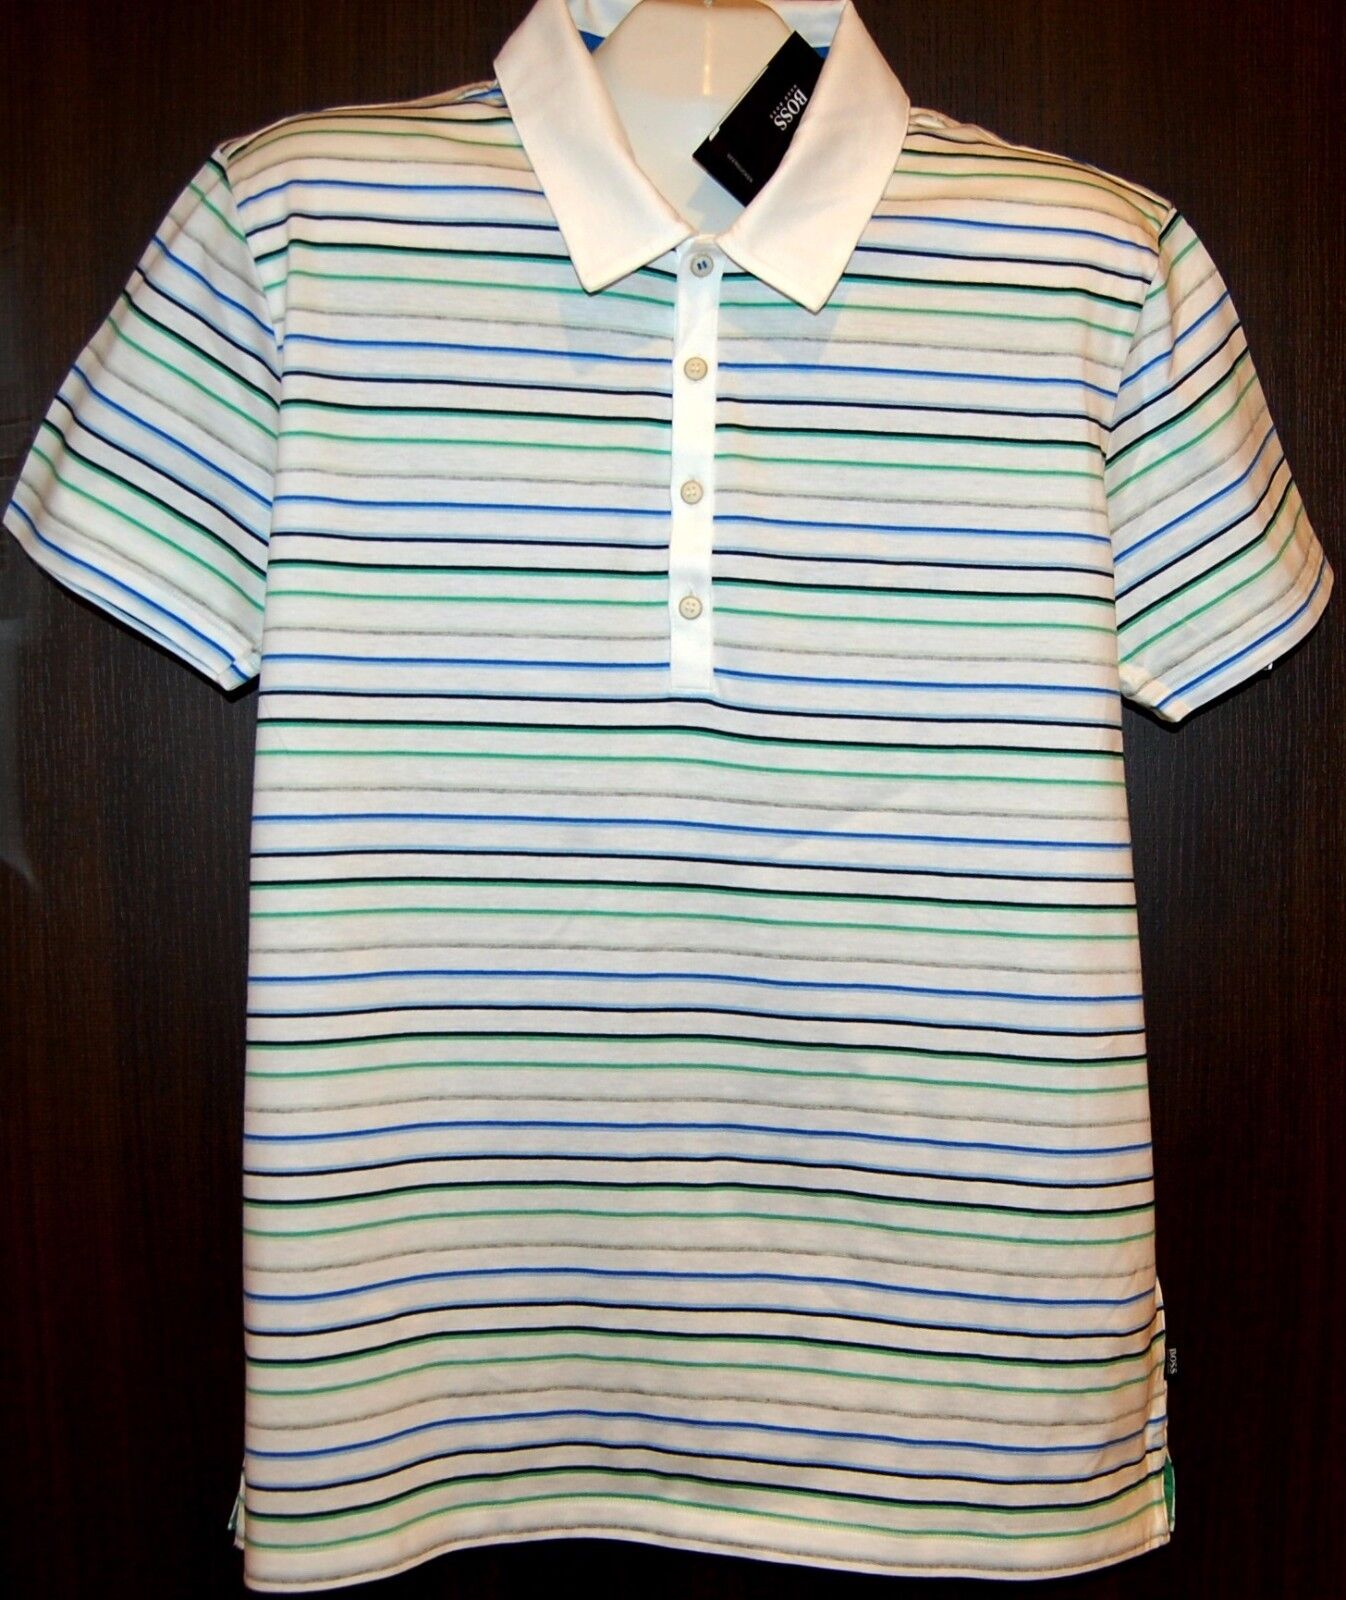 HUGO BOSS White Multi-color Stripes Cotton  Polo MEN'S Shirt Size 2XL NEW